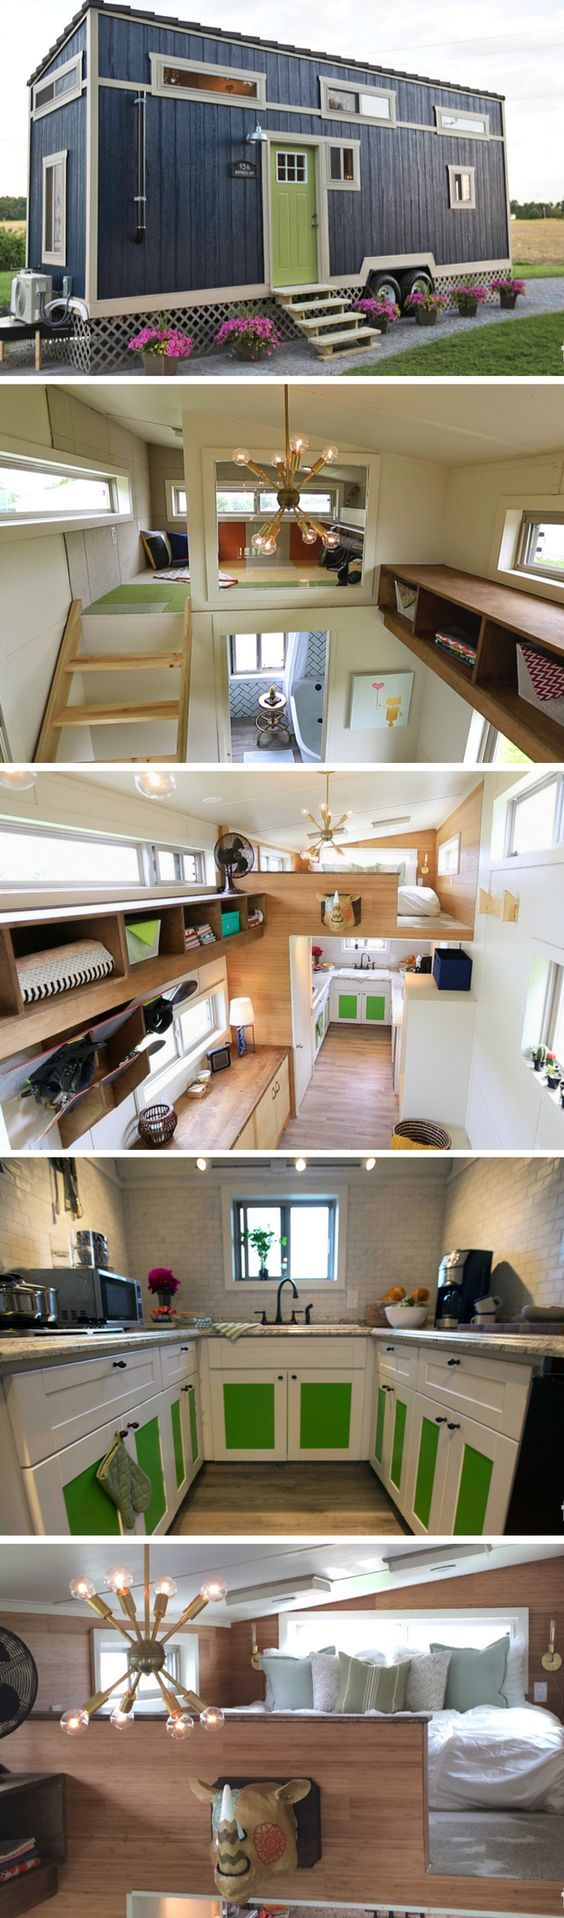 The Bohemian Escape: a 319 sq ft tiny house, designed and built on the show, Tiny House Nation